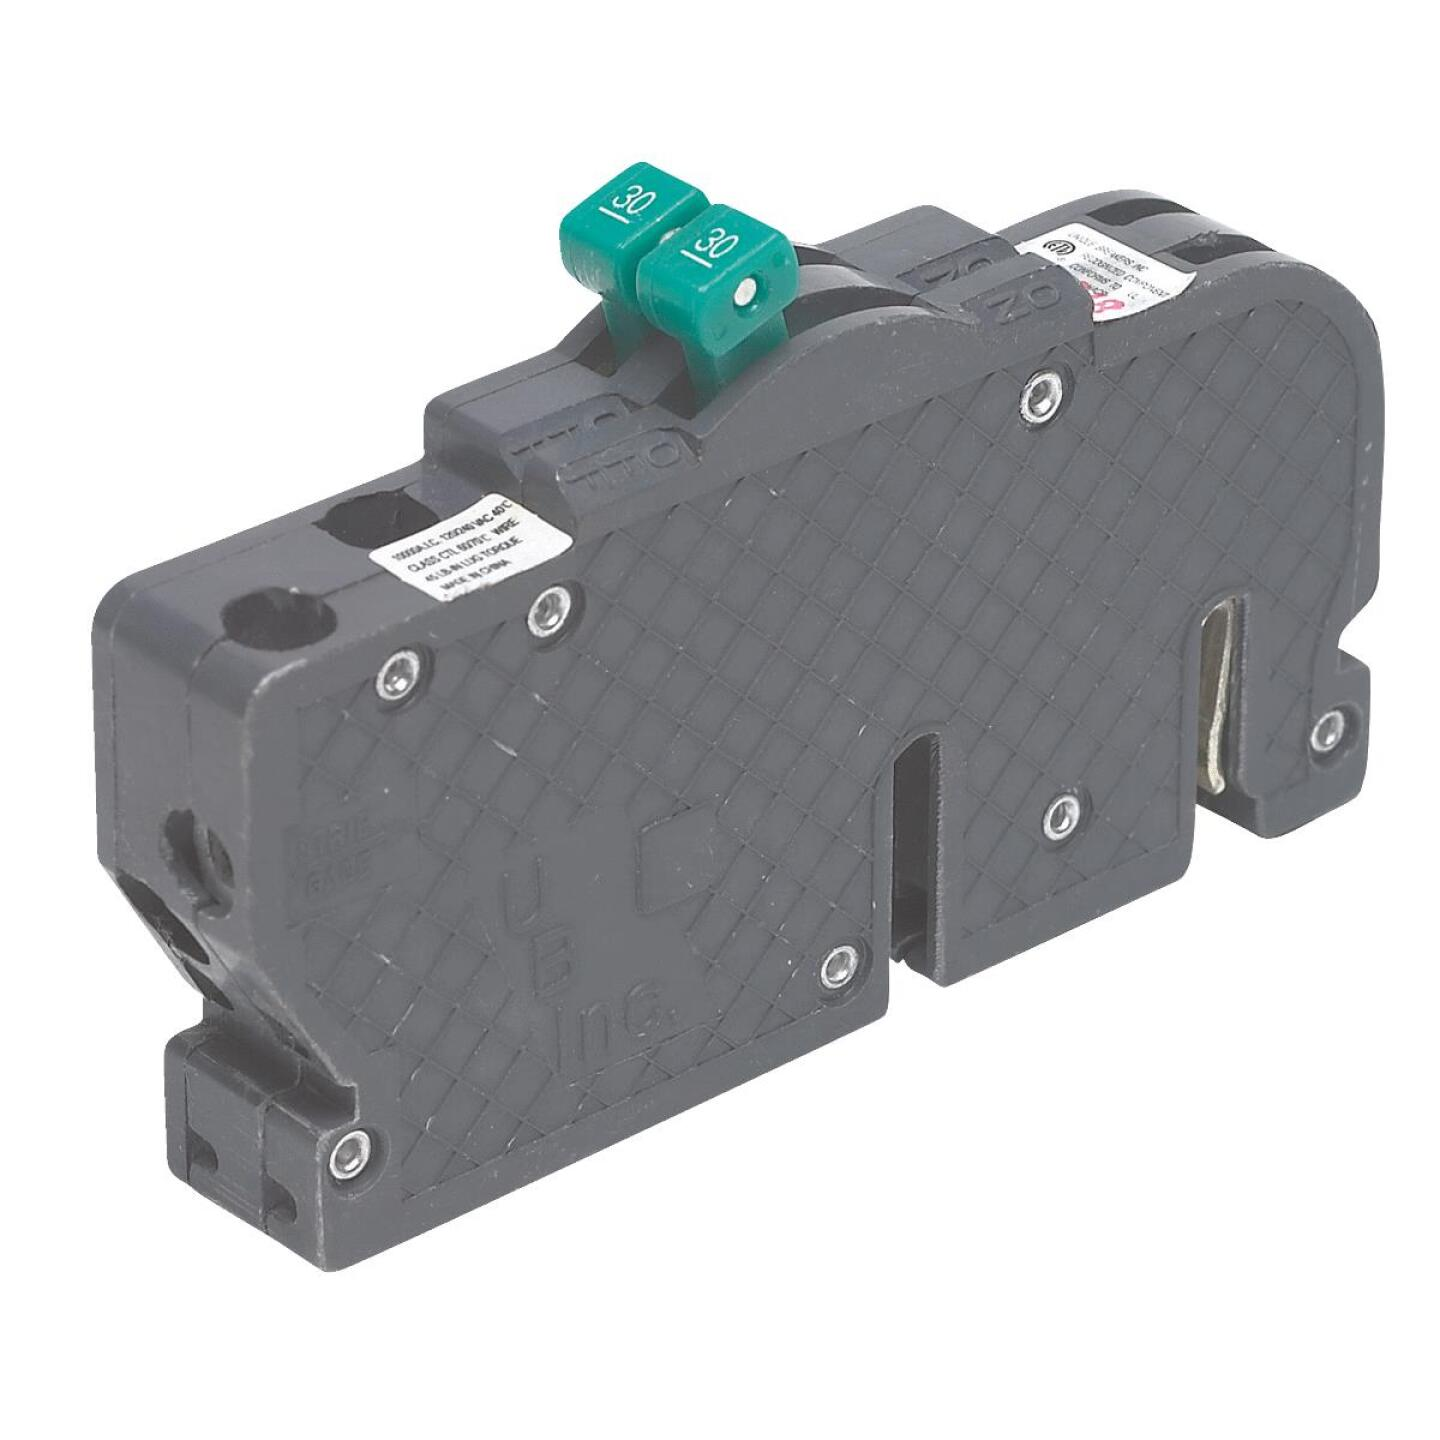 Connecticut Electric 40A/40A Twin Single-Pole Standard Trip Packaged Replacement Circuit Breaker For Zinsco Image 1